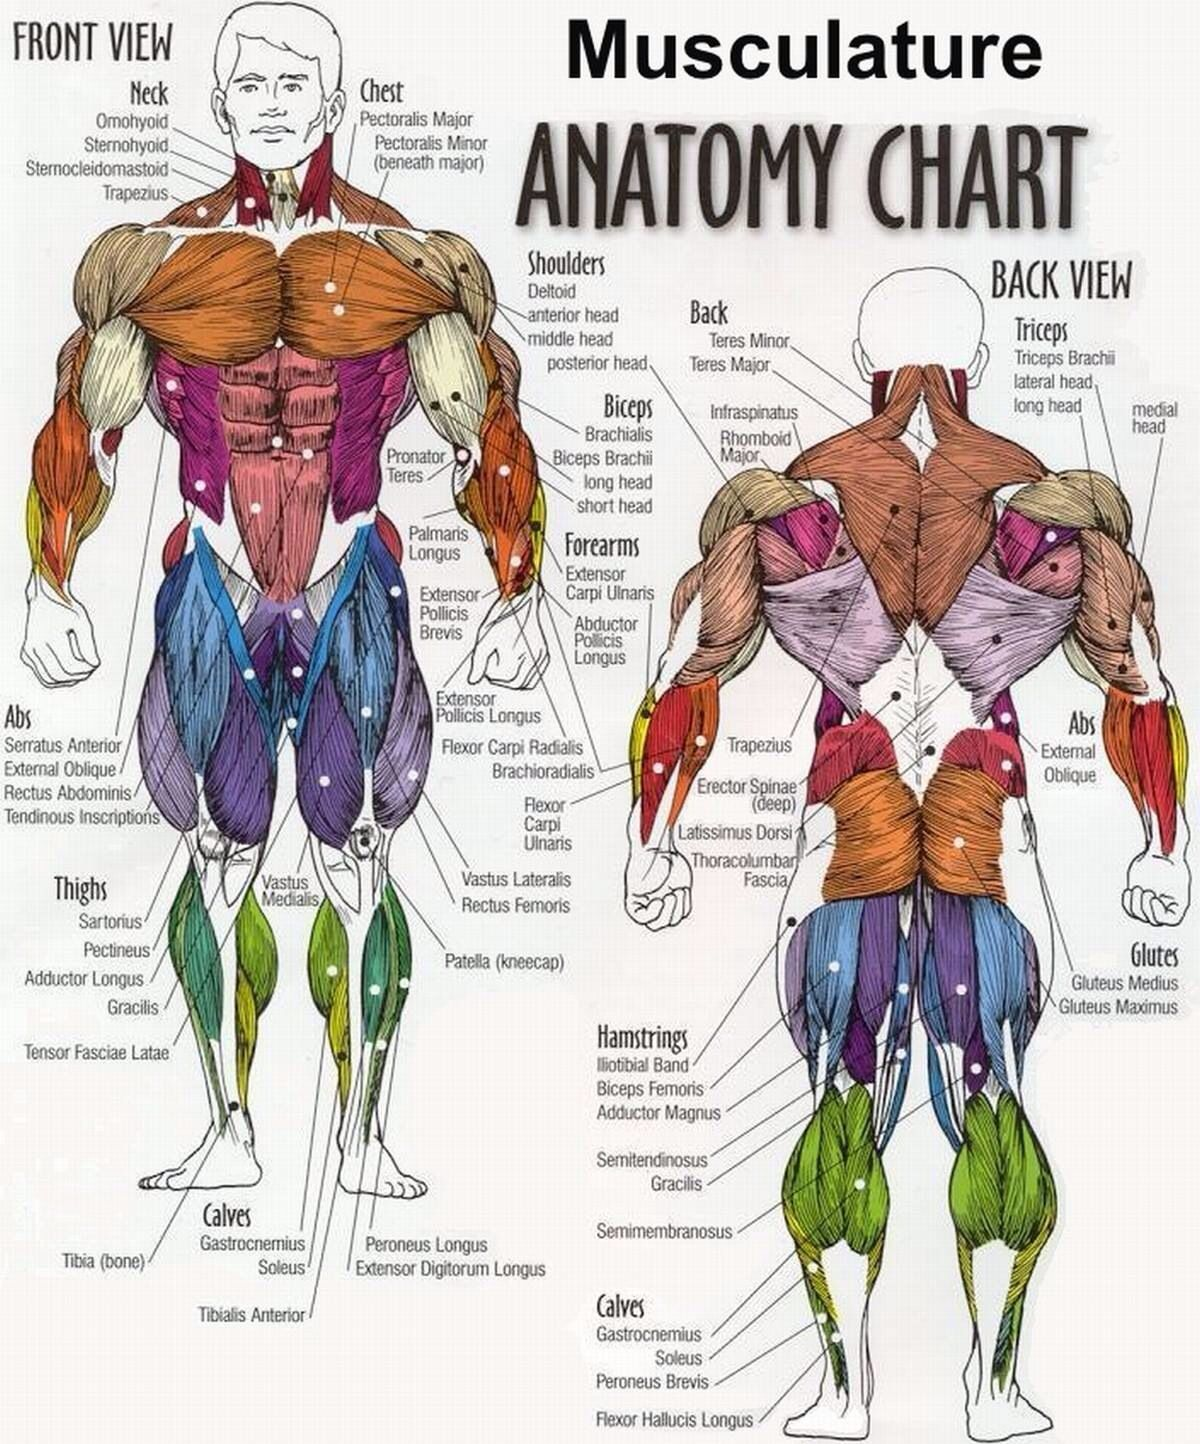 body building anatomy chart from gym posters | weightlifting, Muscles